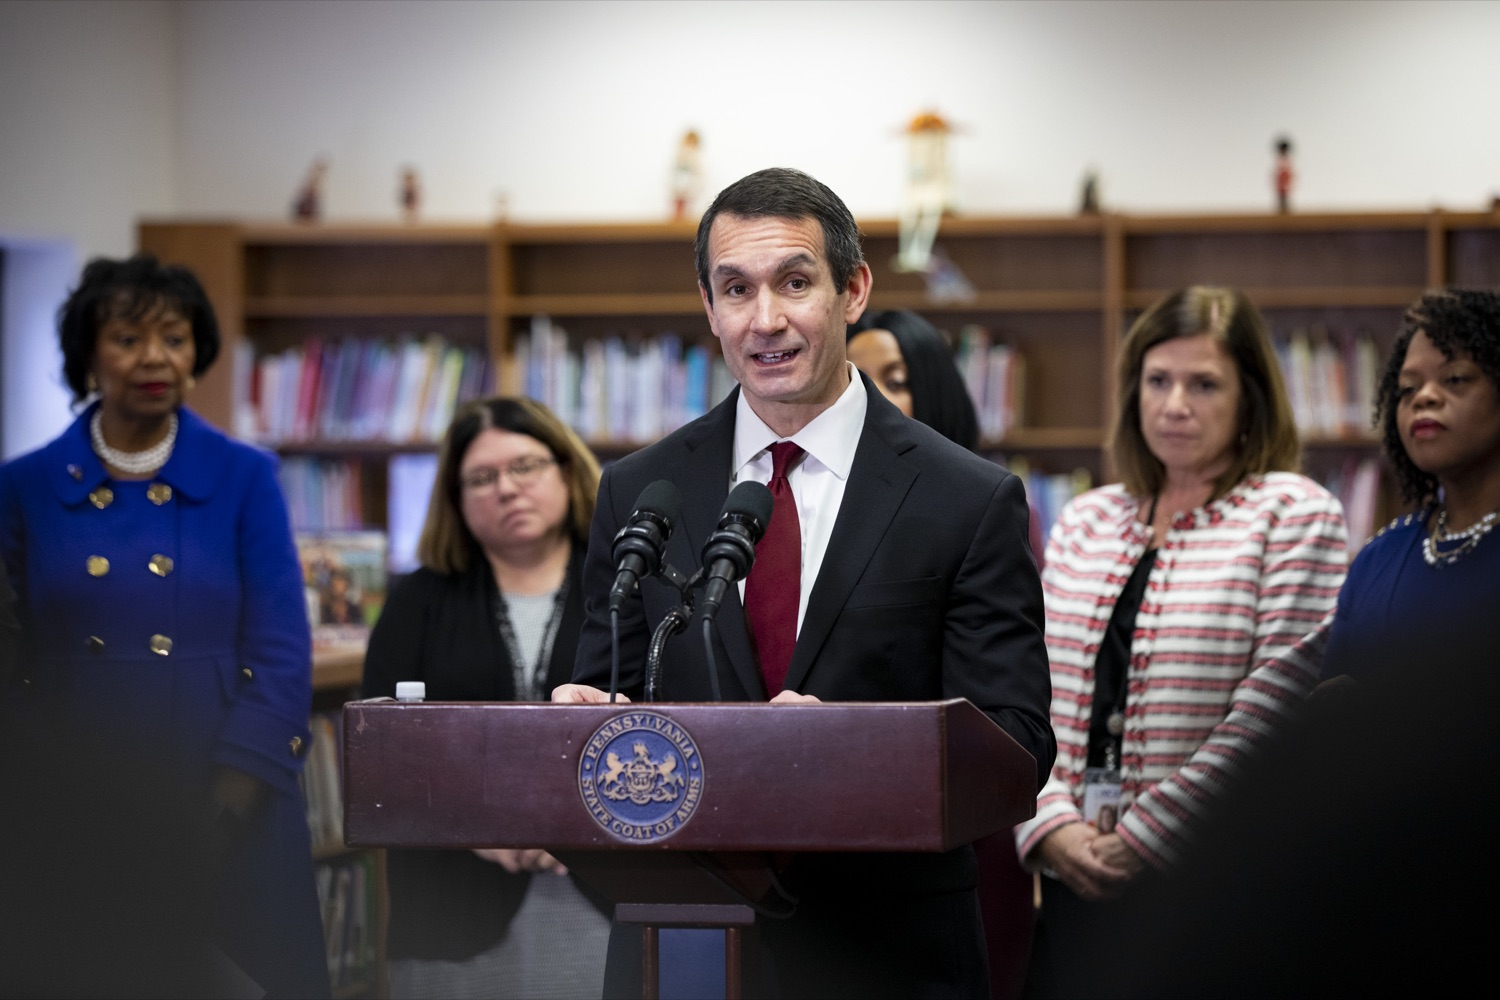 """<a href=""""http://filesource.abacast.com/commonwealthofpa/photo/17611_AUD_GEN_HBG_AUDIT_UPDATE_CZ_09.JPG"""" target=""""_blank"""">⇣Download Photo<br></a>Auditor General Eugene DePasquale announces updates to the real-time audit of Harrisburg School District, applauding improvements in transparency, at Foose Elementary School in Harrisburg on November 25, 2019."""